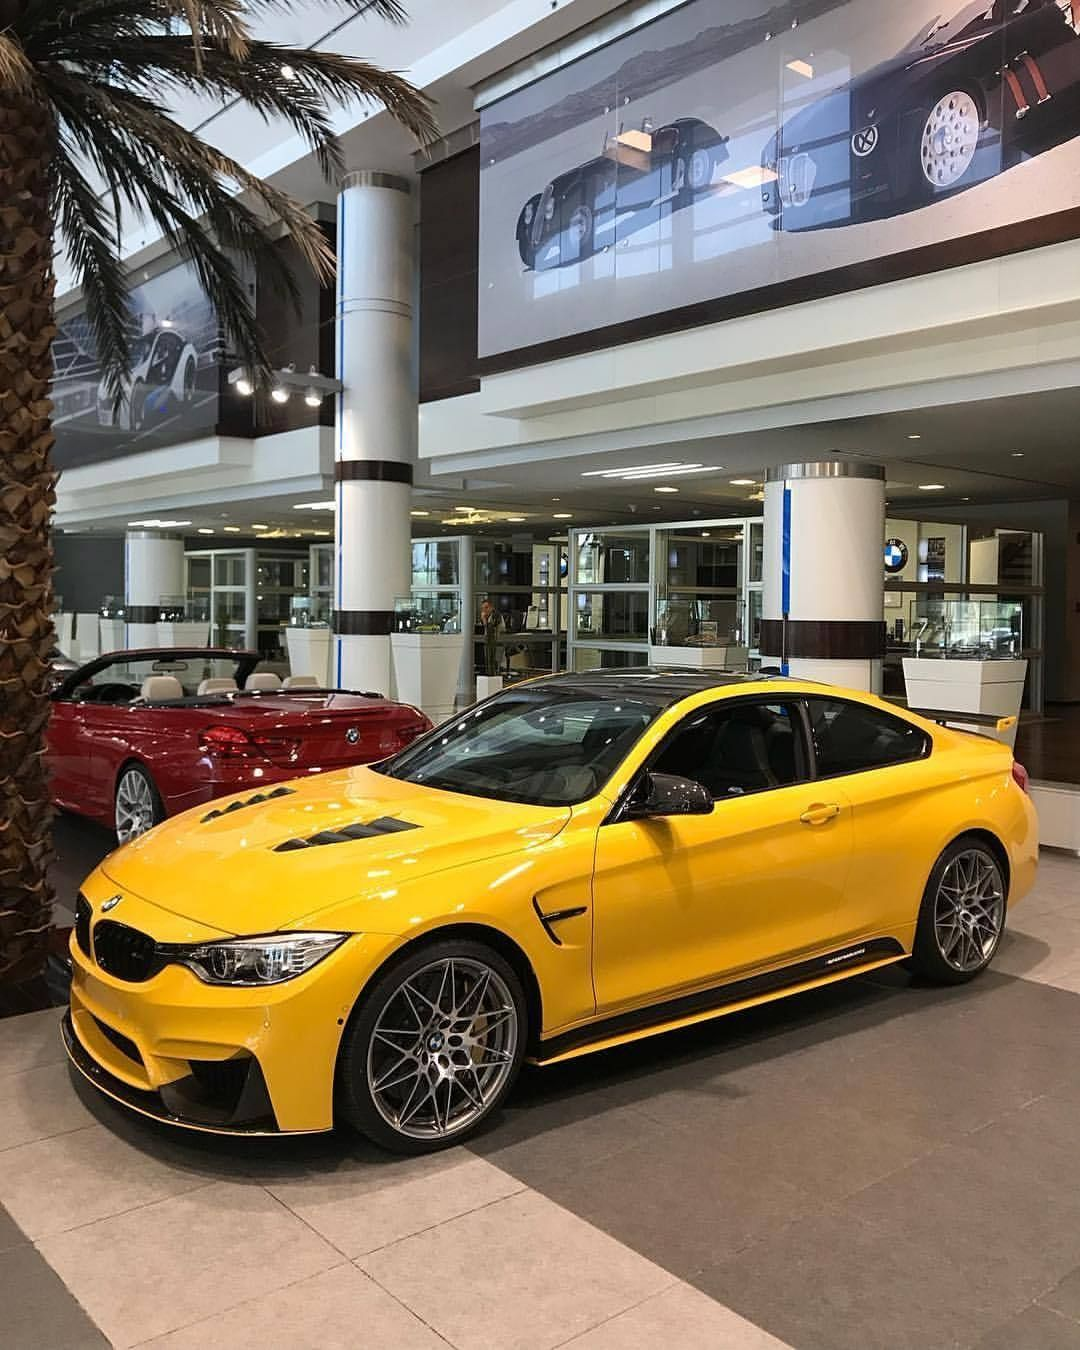 Post Anything From Anywhere Customize Everything And Find And Follow What You Love Create Your Own Tumblr Blog Today Bmw Bmw M4 Bmw Car